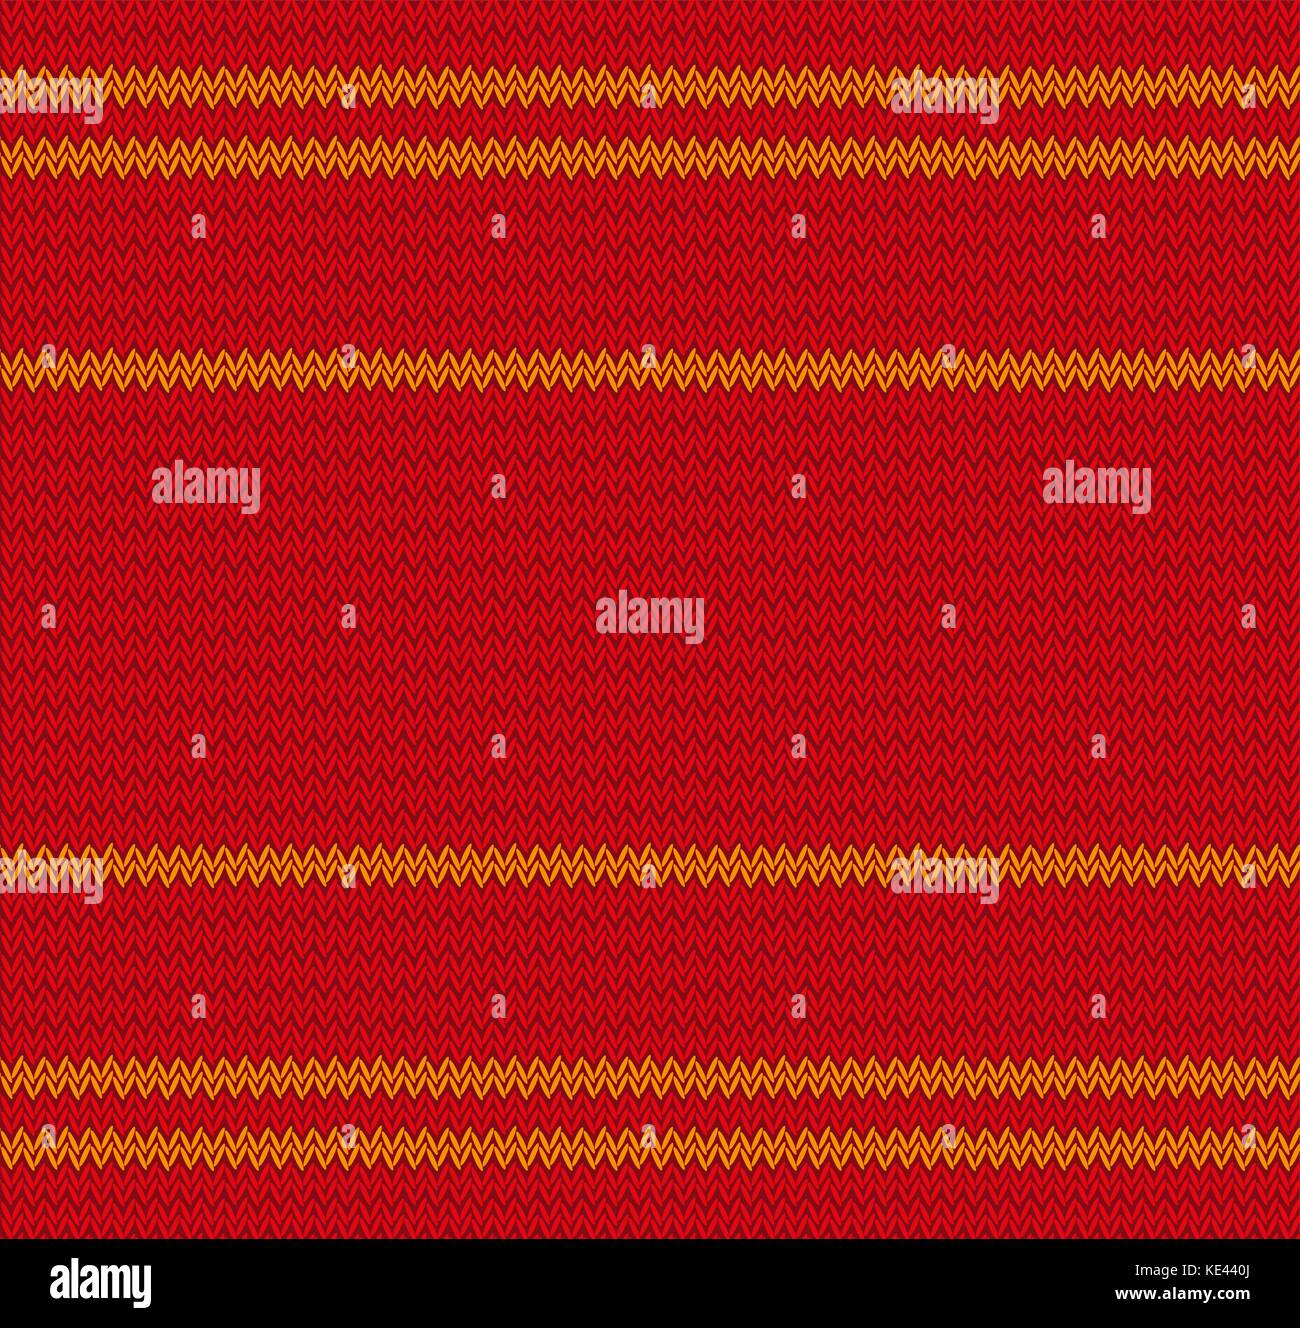 Christmas texture of knitted warm sweater. Knitted seamless pattern, endless background. Vector illustration. - Stock Vector